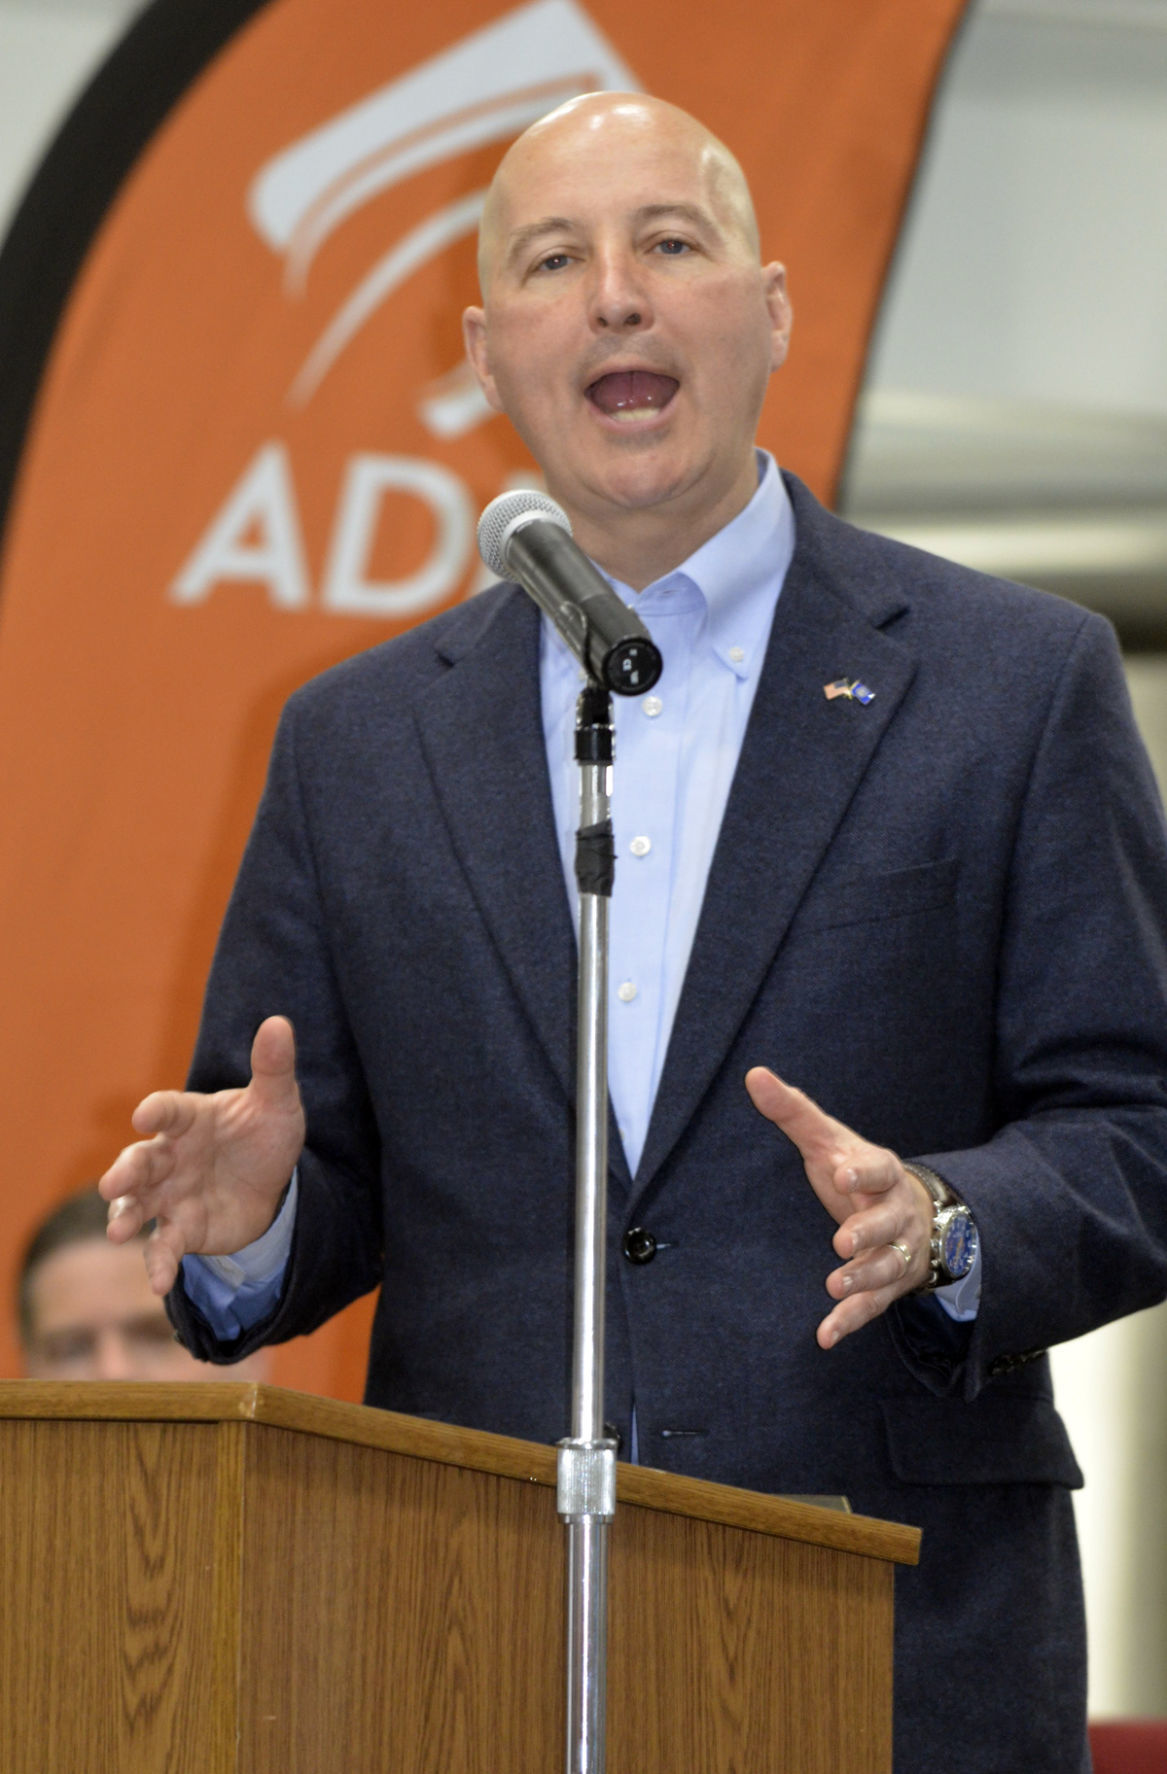 ADM unveils high-tech feed plant in Columbus | Local